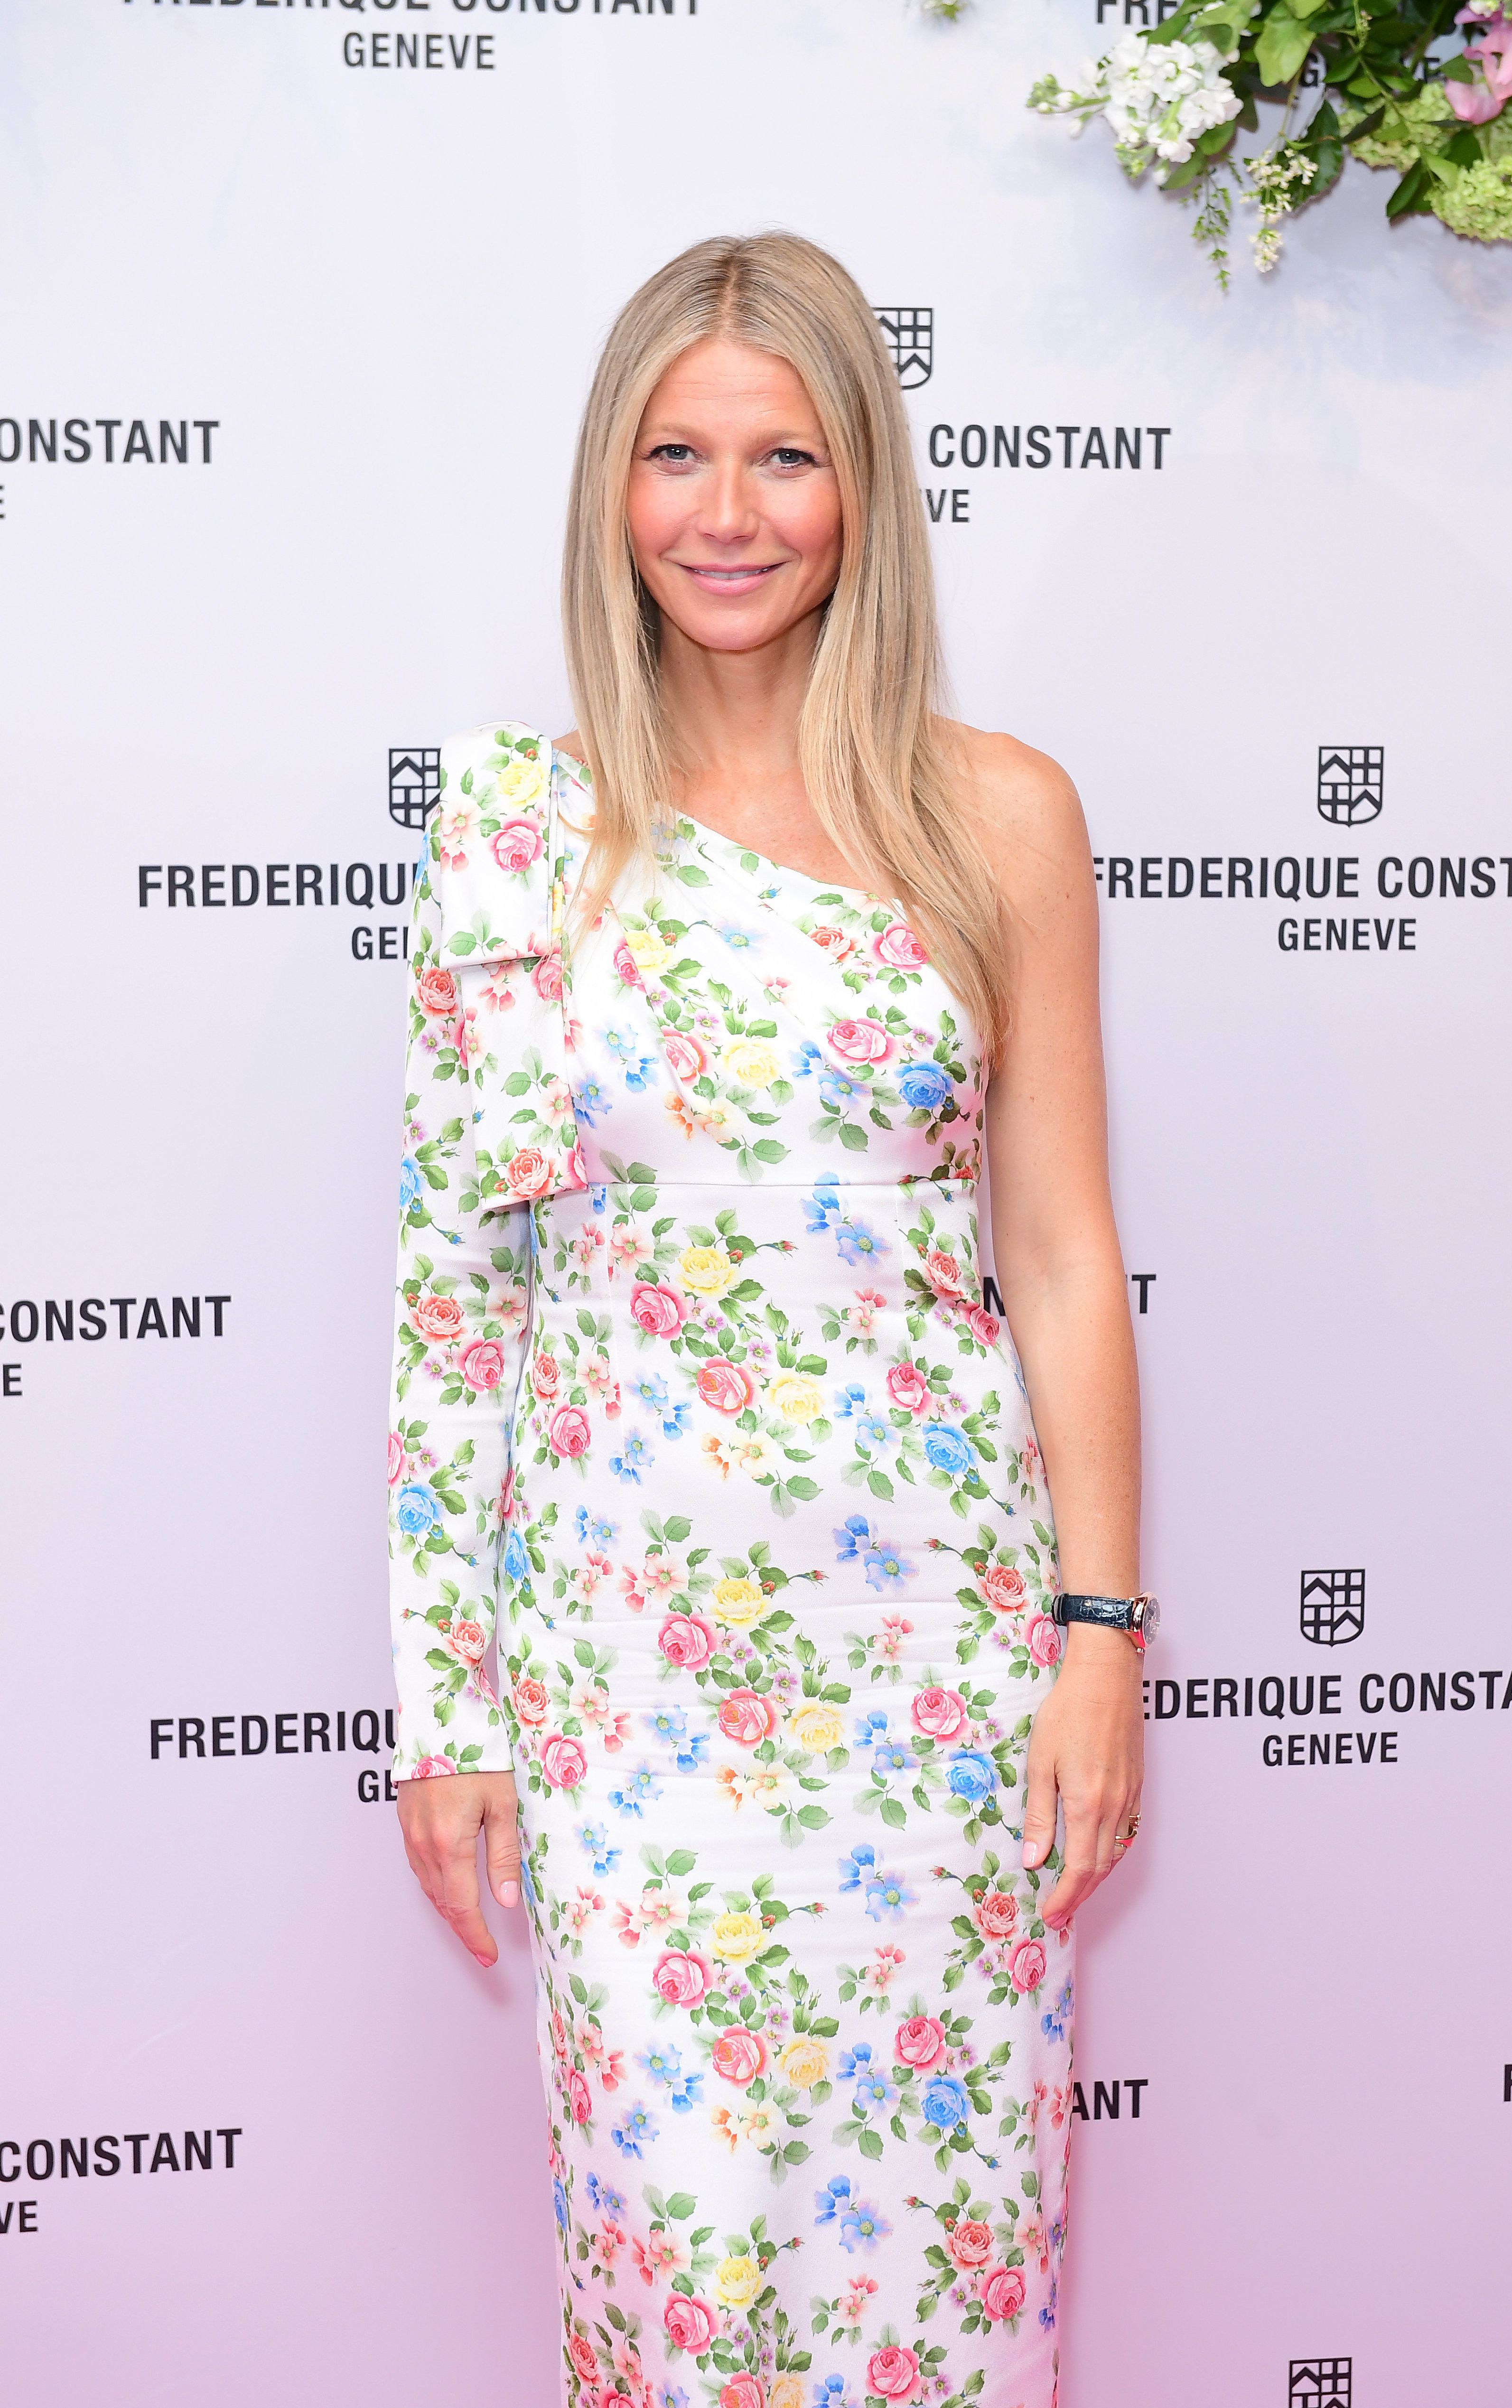 Gwyneth Paltrow poses during an eventat the Design Museum in